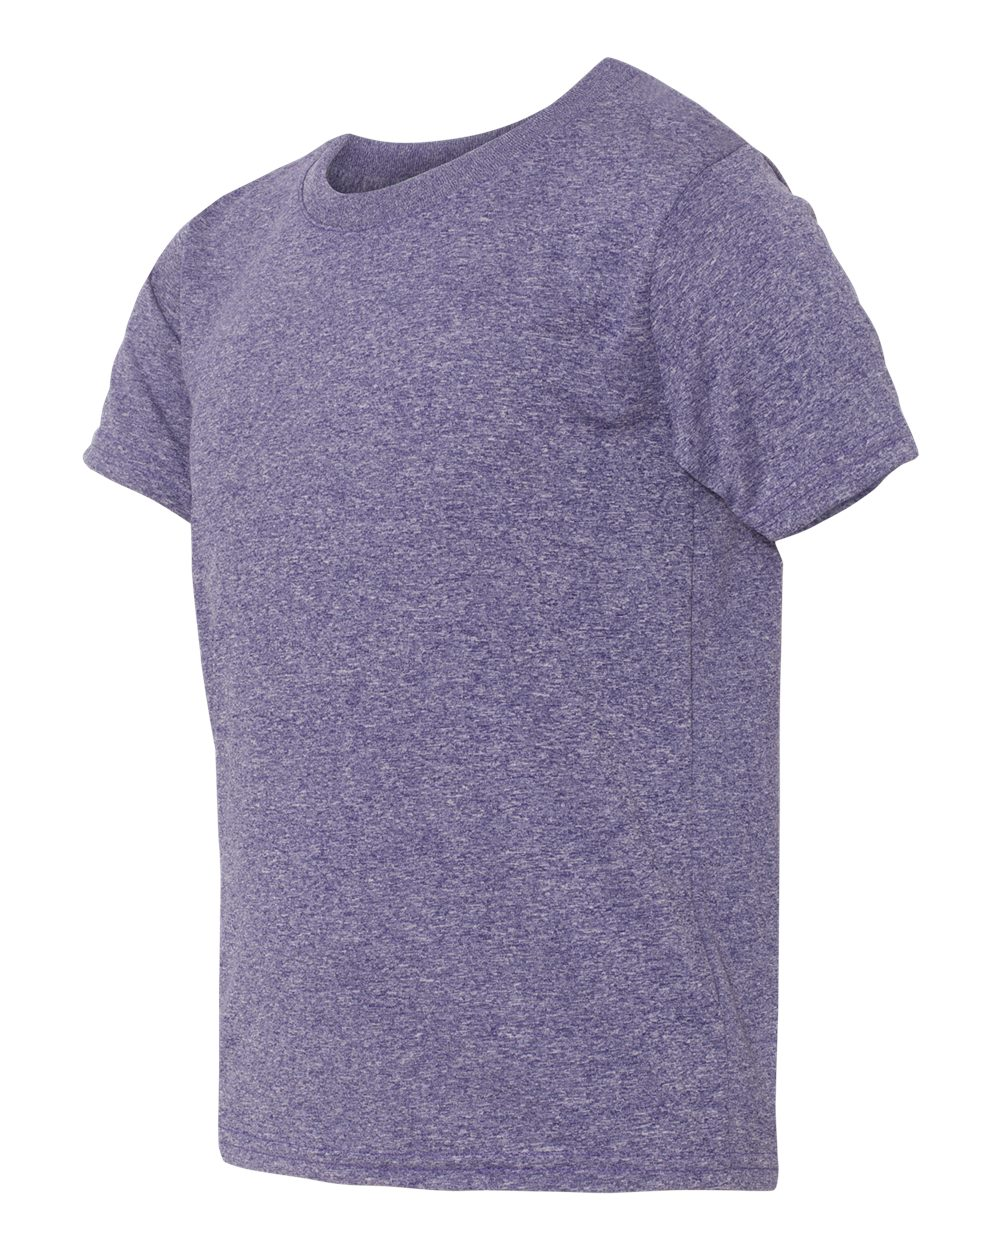 click to view Heather Sport Purple